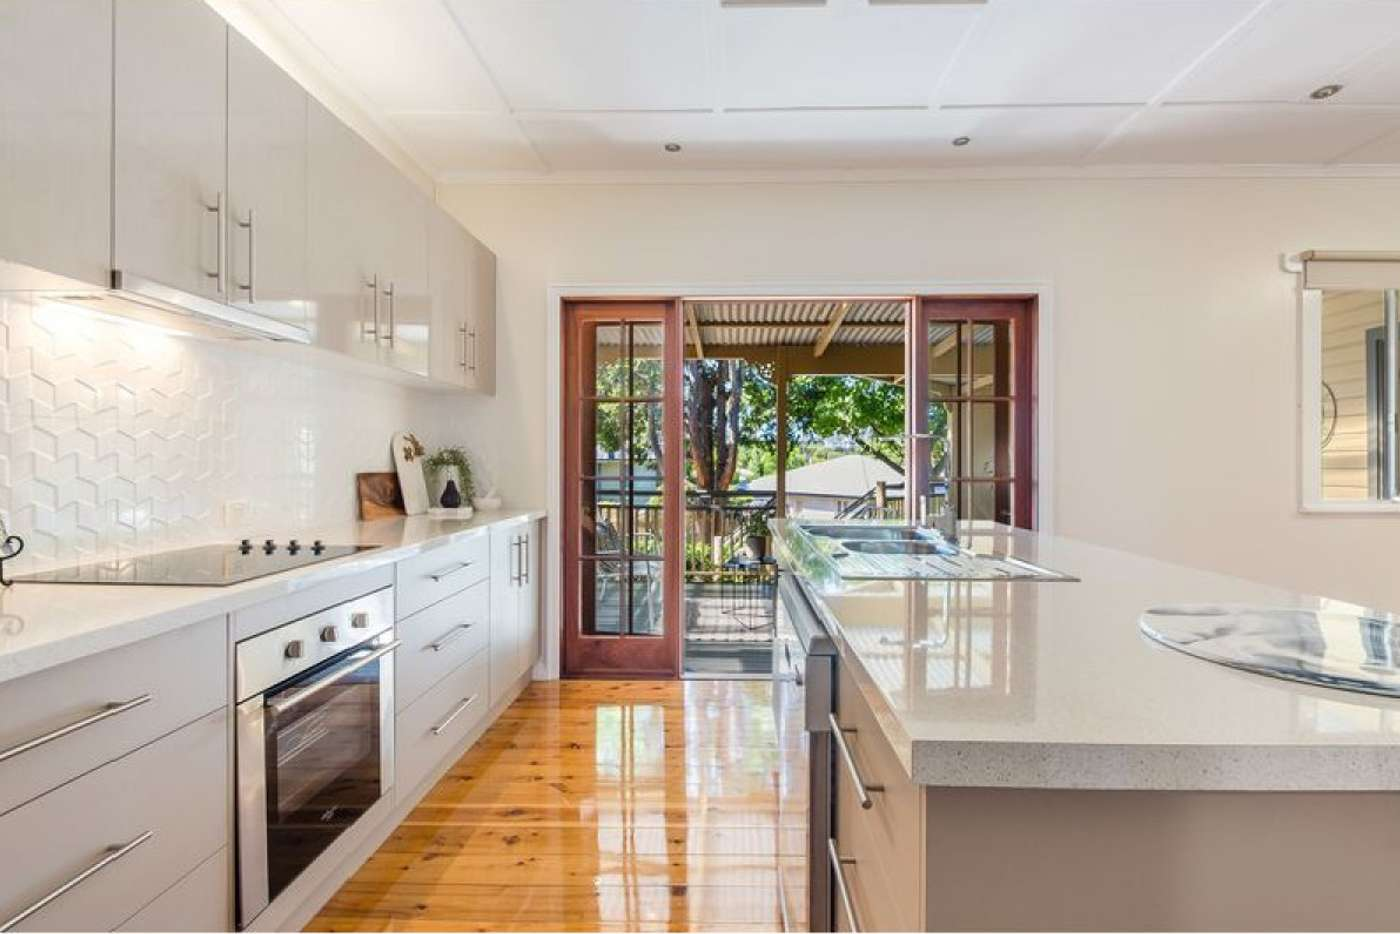 Main view of Homely house listing, 8 Herbert Street, East Toowoomba QLD 4350